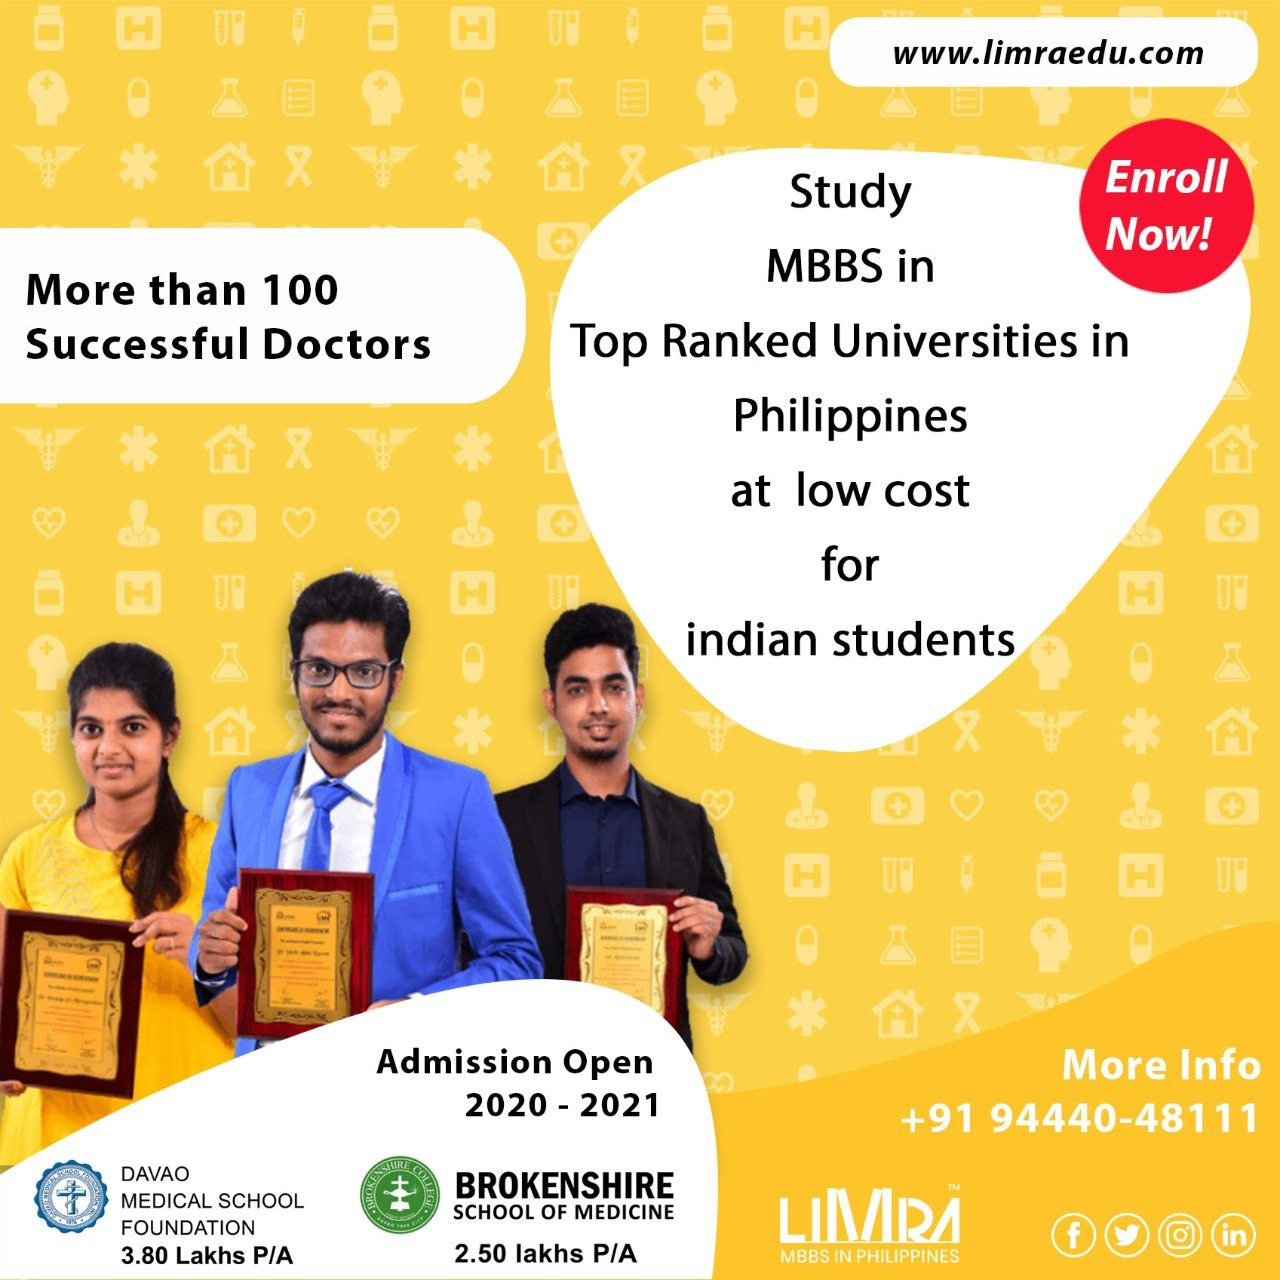 mbbs in abroad for indian students | Study MBBS in Abroad